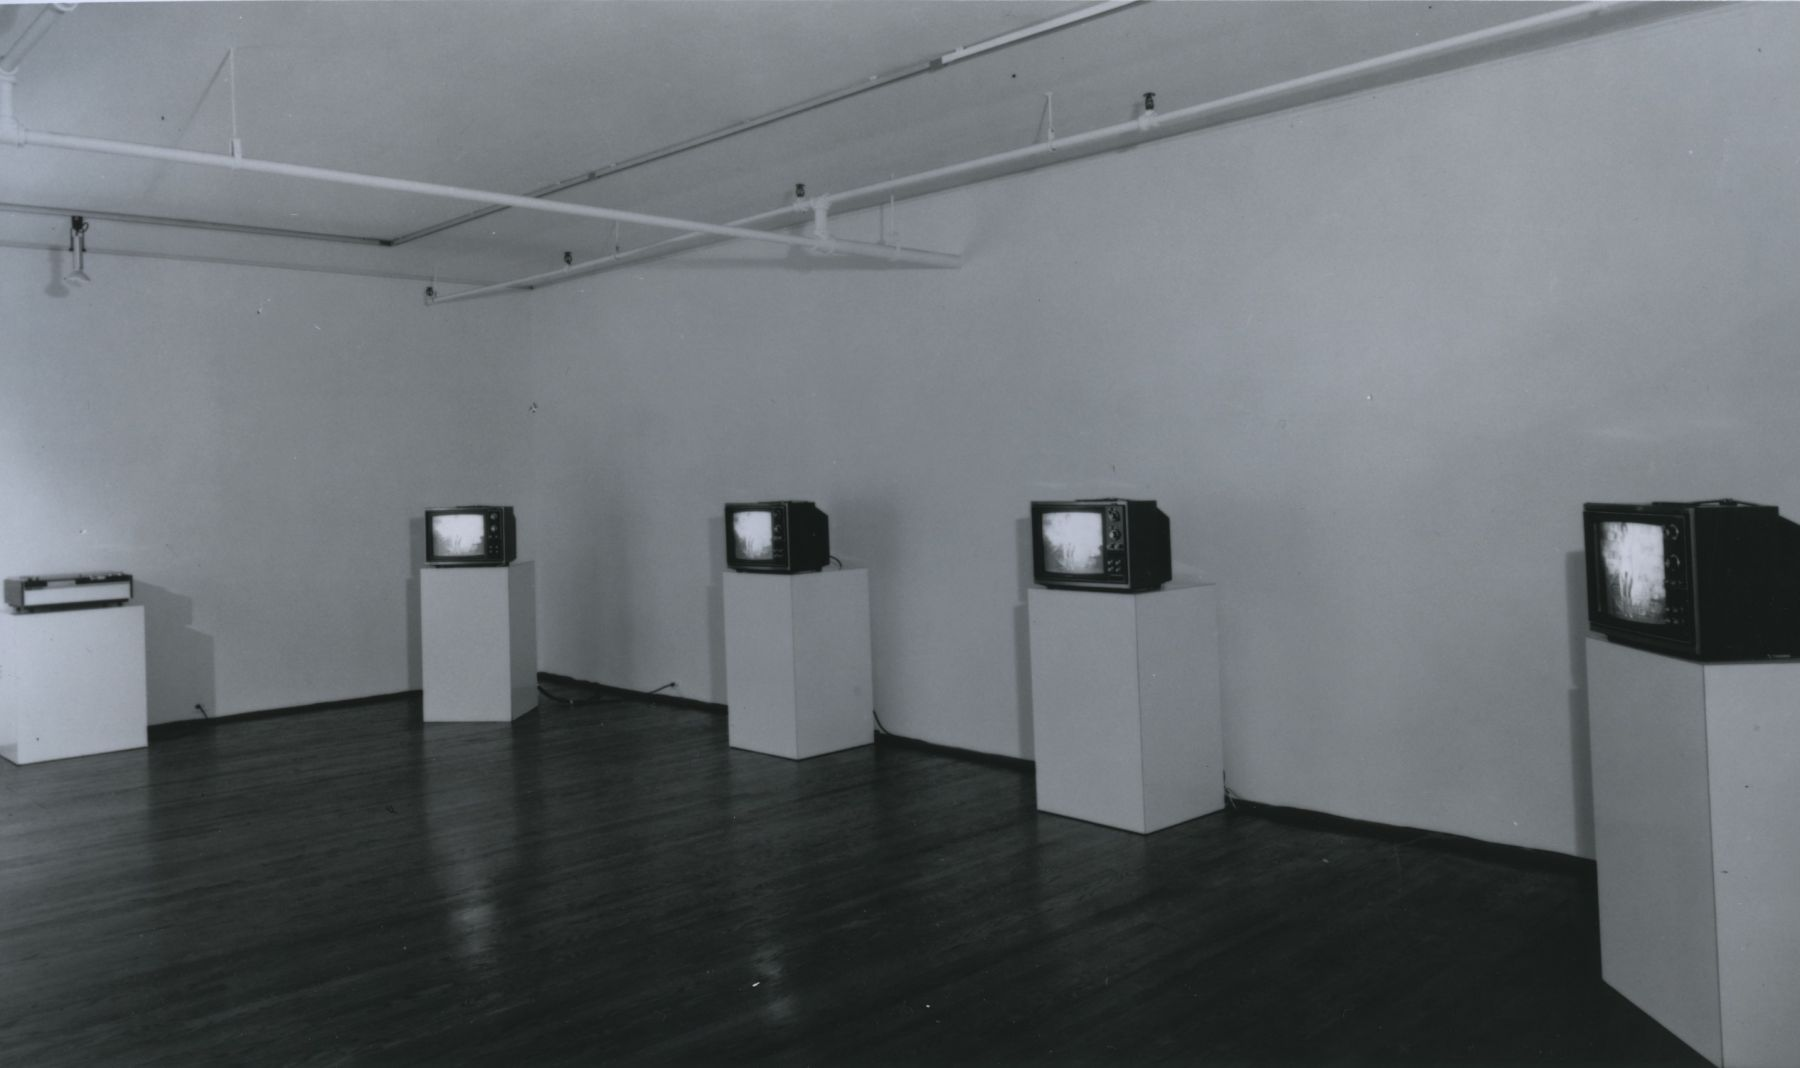 Installation view, Video Cassettes, 420 WEST BROADWAY.